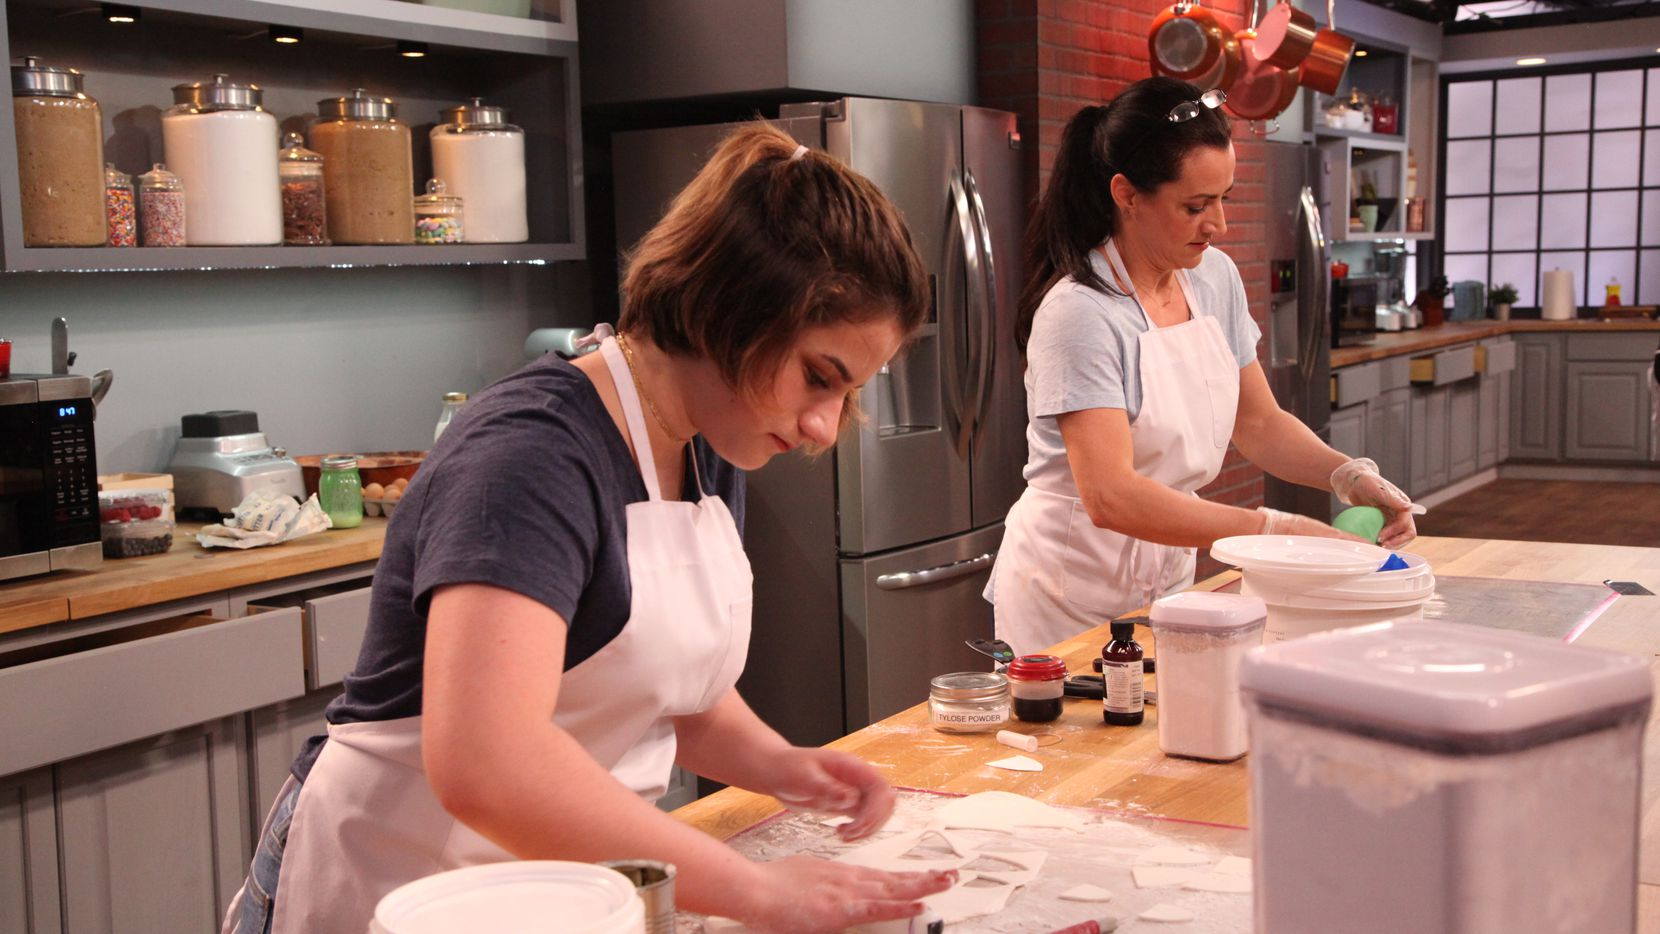 Audrey McGinnis and Ryan McGinnis, of Frisco, will be on Bake it Like Buddy, a new Discovery Family show featuring Buddy Valastro from Cake Boss, on Saturday, Sept. 29, 2018.